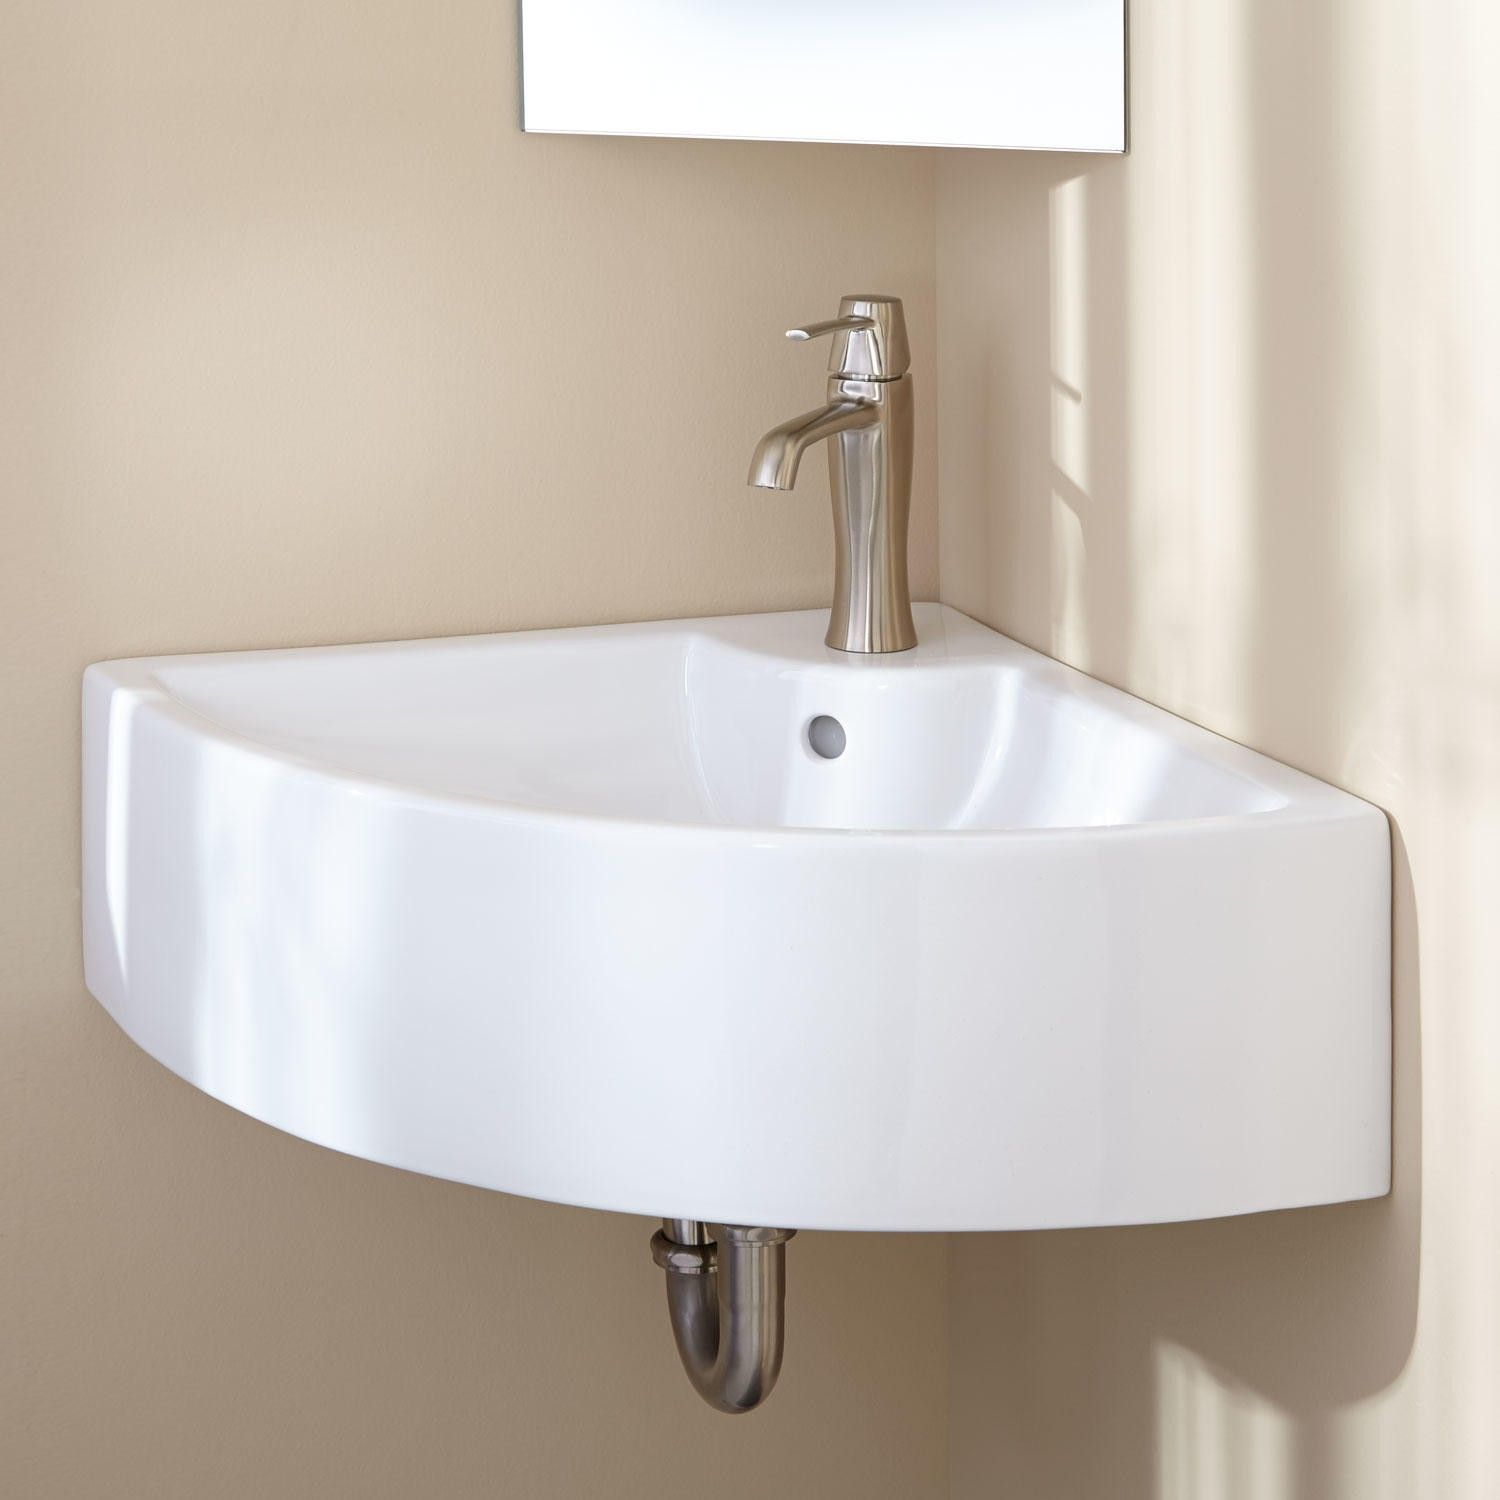 Bathroom Furniture Fixtures And Decor Small Sinkwall Mounted